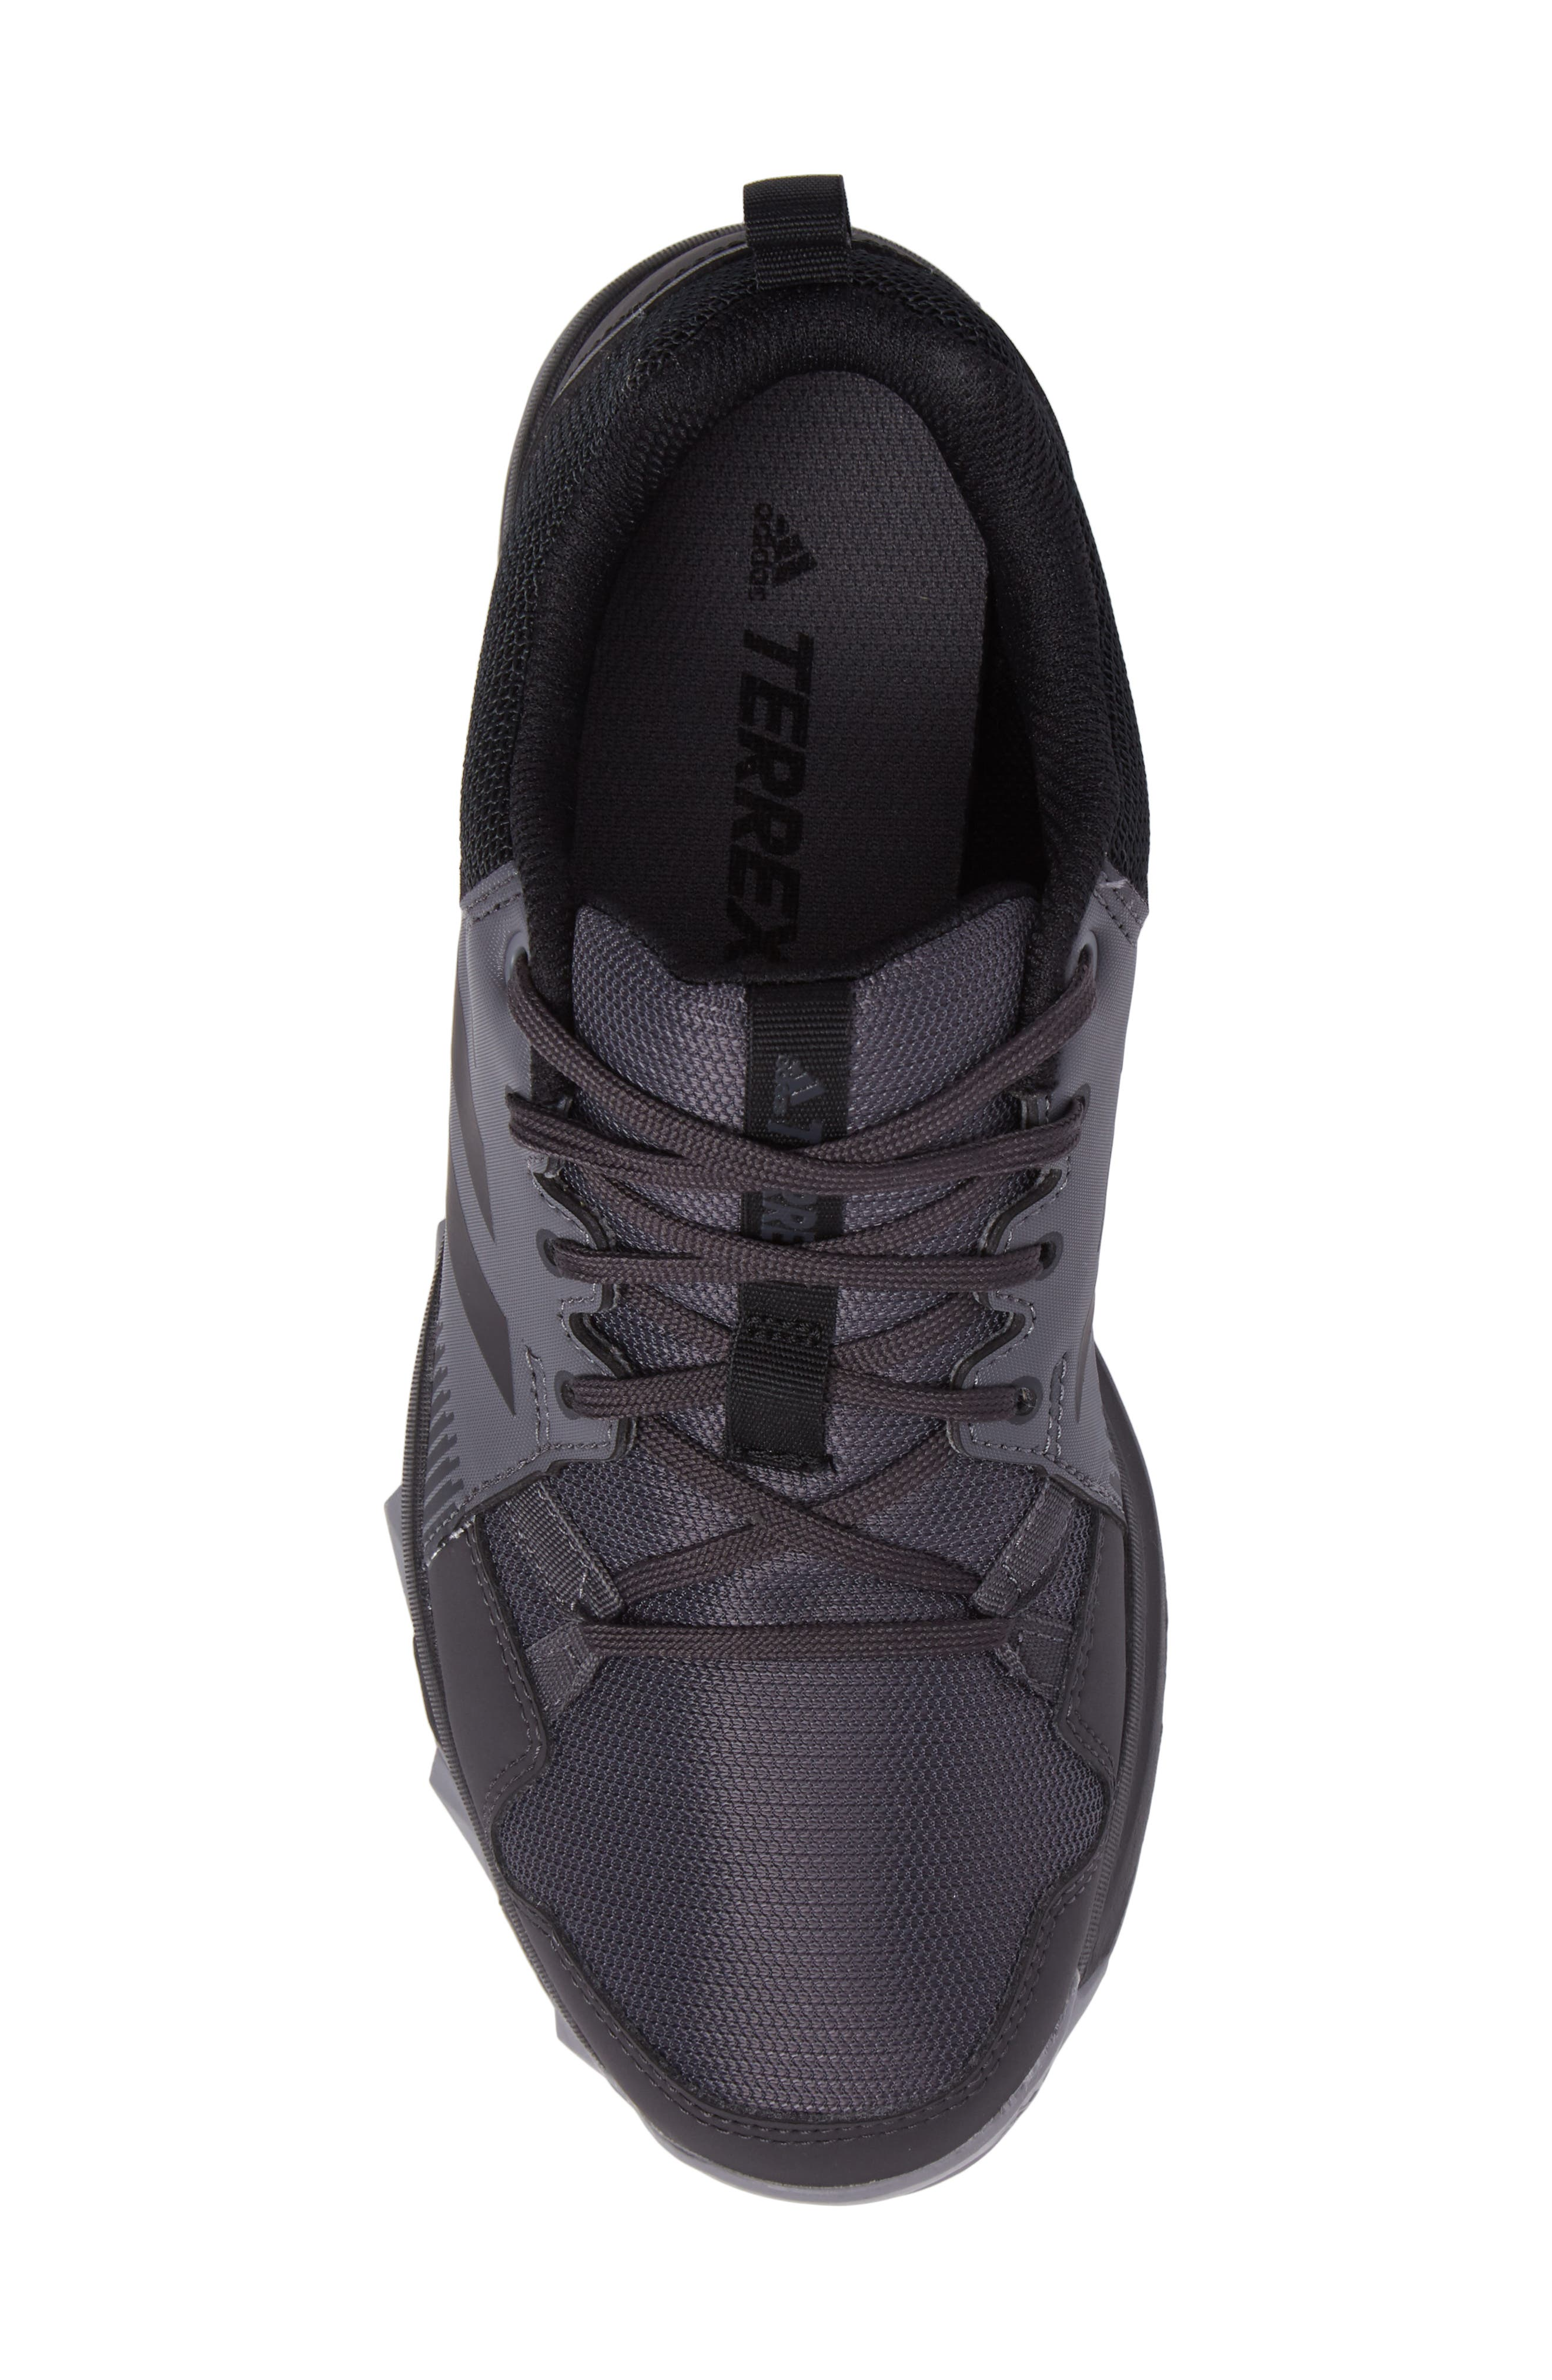 'Tracerocker' Athletic Shoe,                             Alternate thumbnail 5, color,                             002